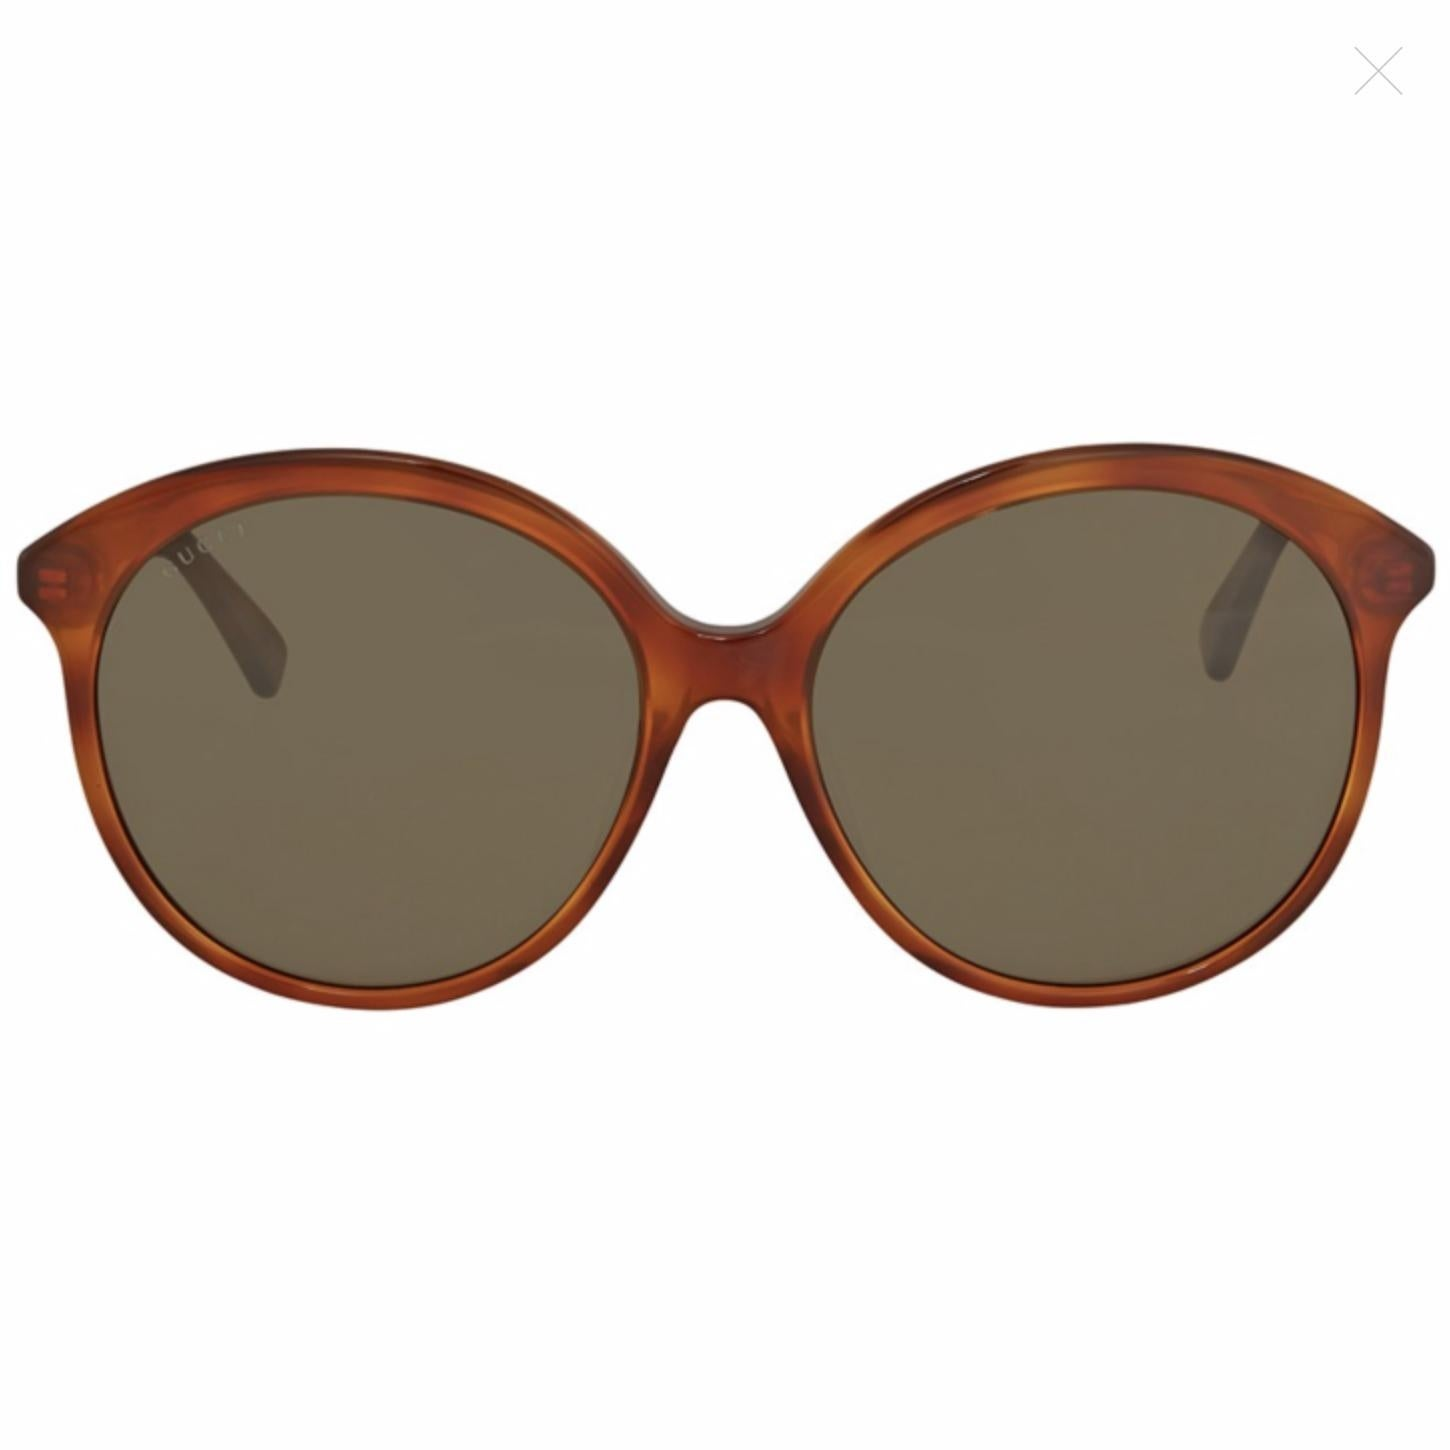 72ee14d995f Shop Gucci Brown Round Sunglasses Gg0257Sa-002 59 - HAVANA-HAVANA-BROWN -  One Size - Free Shipping Today - Overstock - 24266466